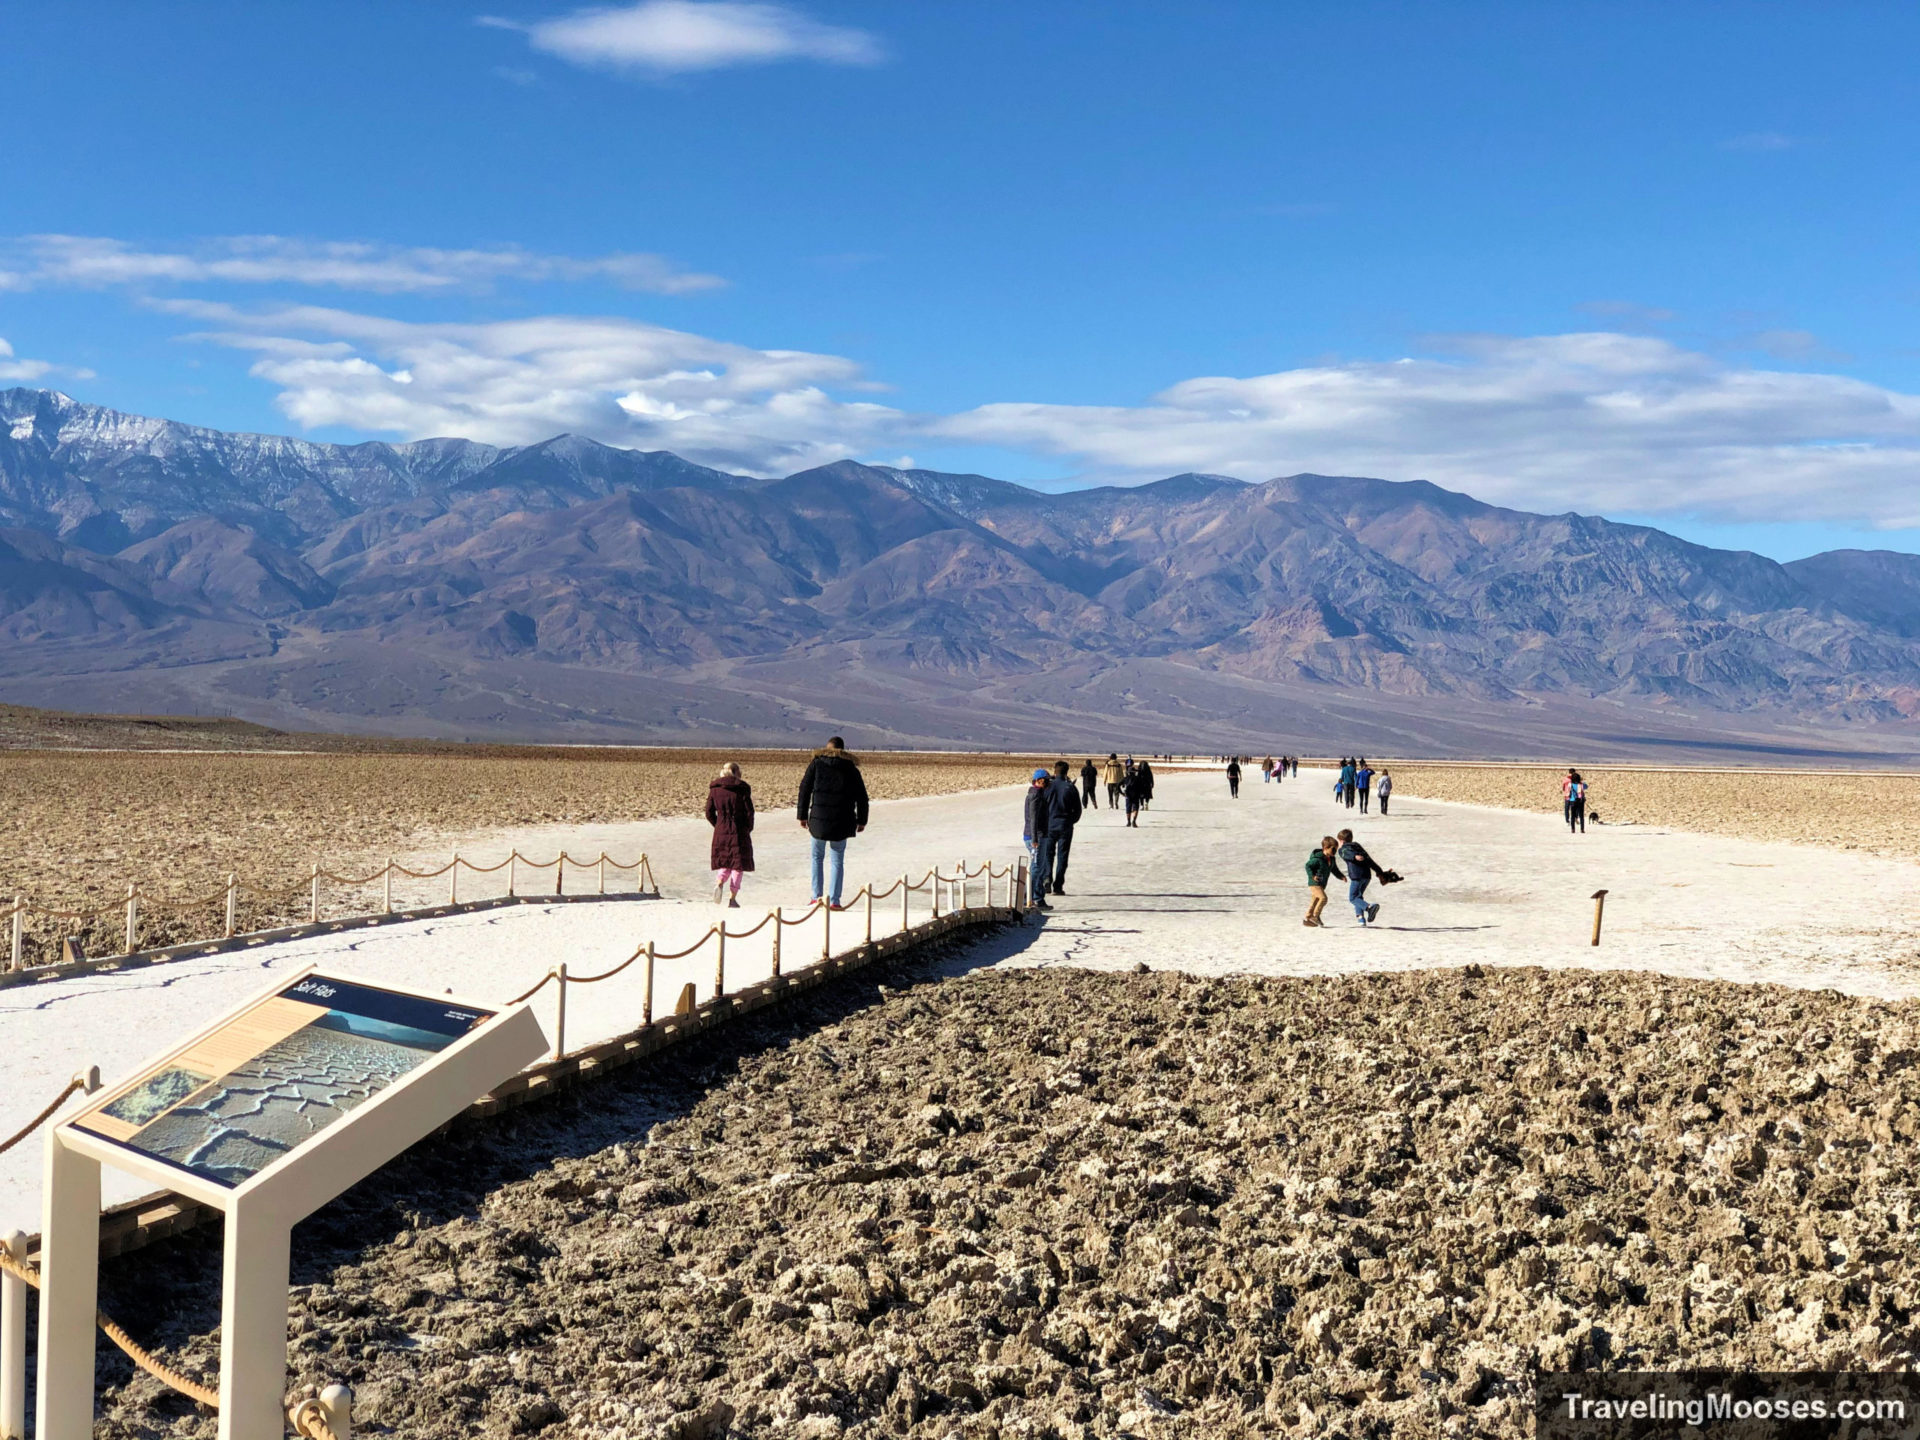 Crowds on Boardwalk at Badwater Basin